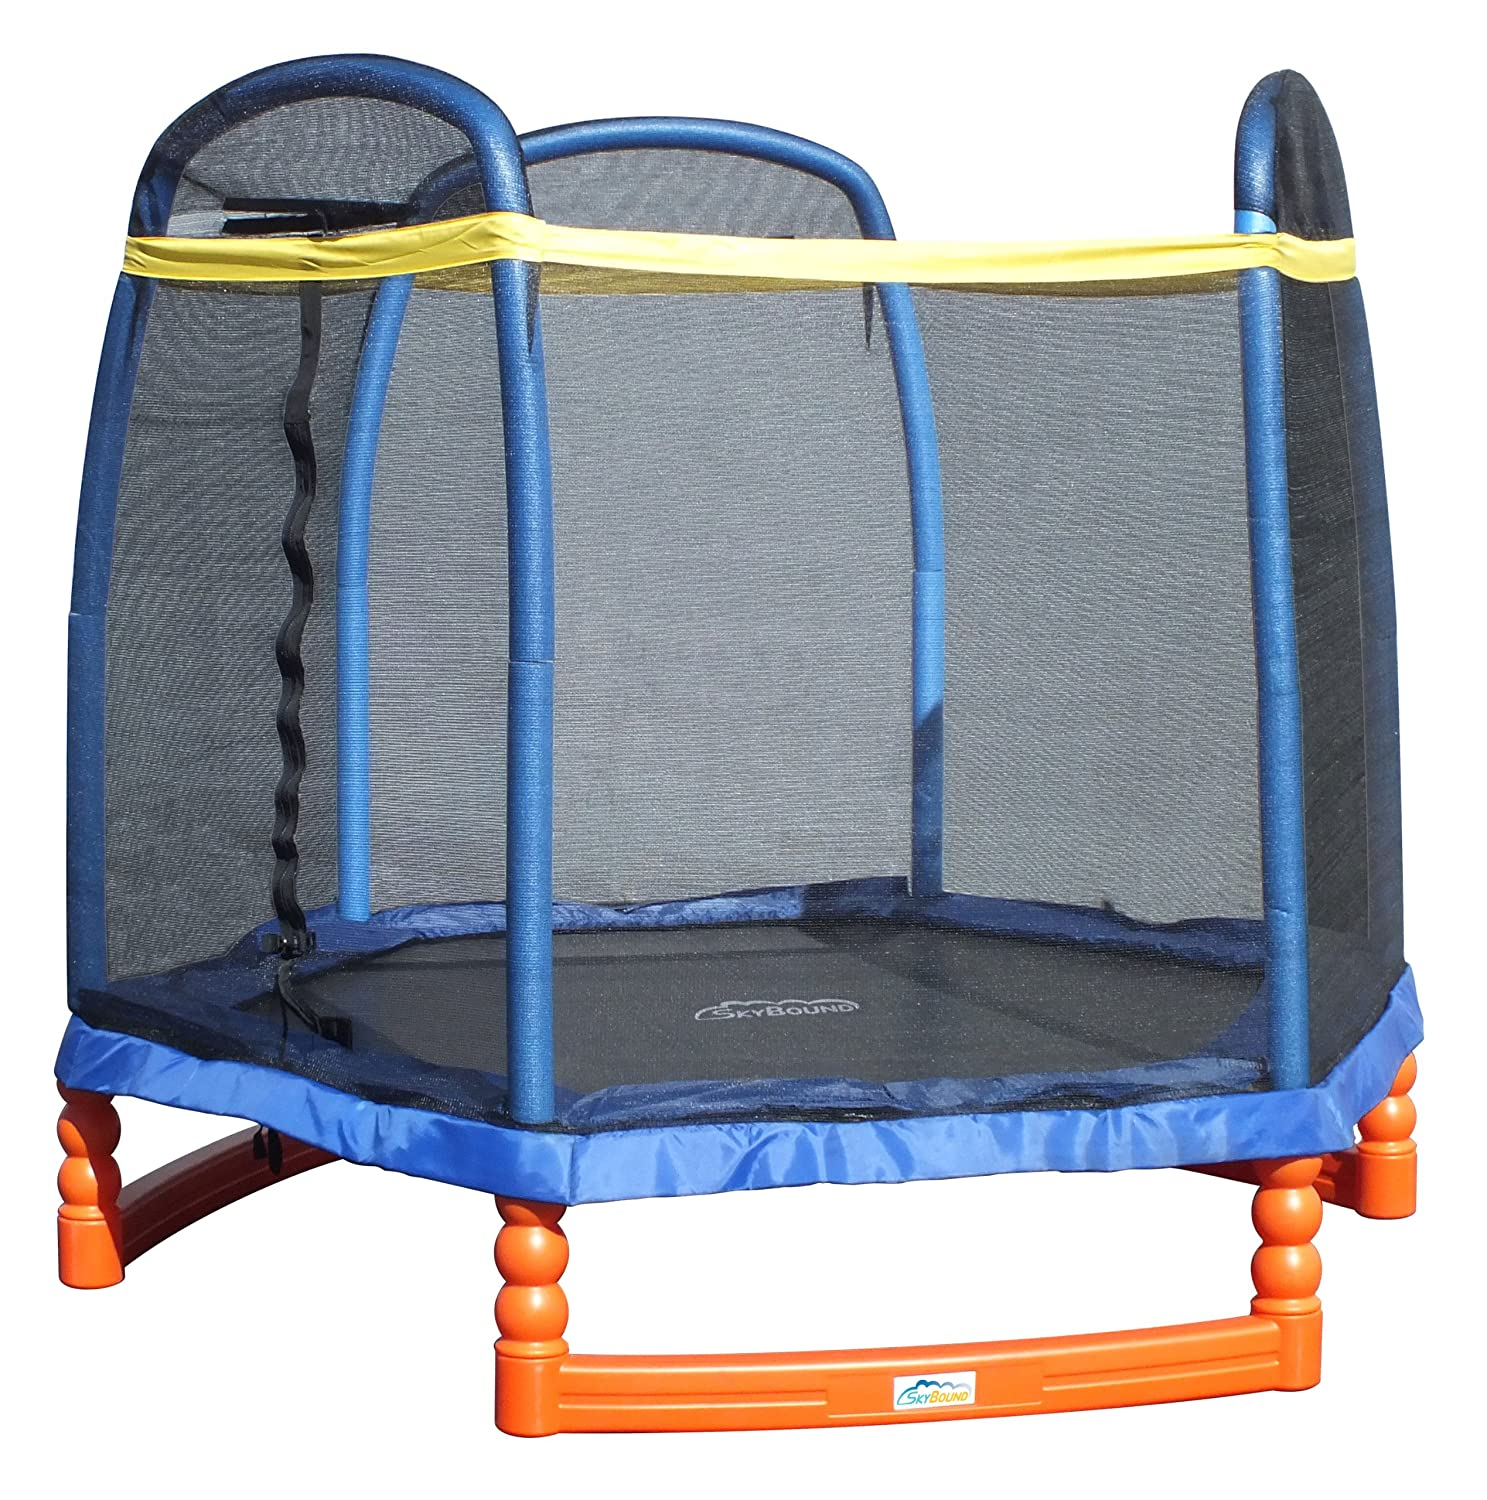 Terrific toy to get your kids moving! SkyBound Super 7 Trampoline Review